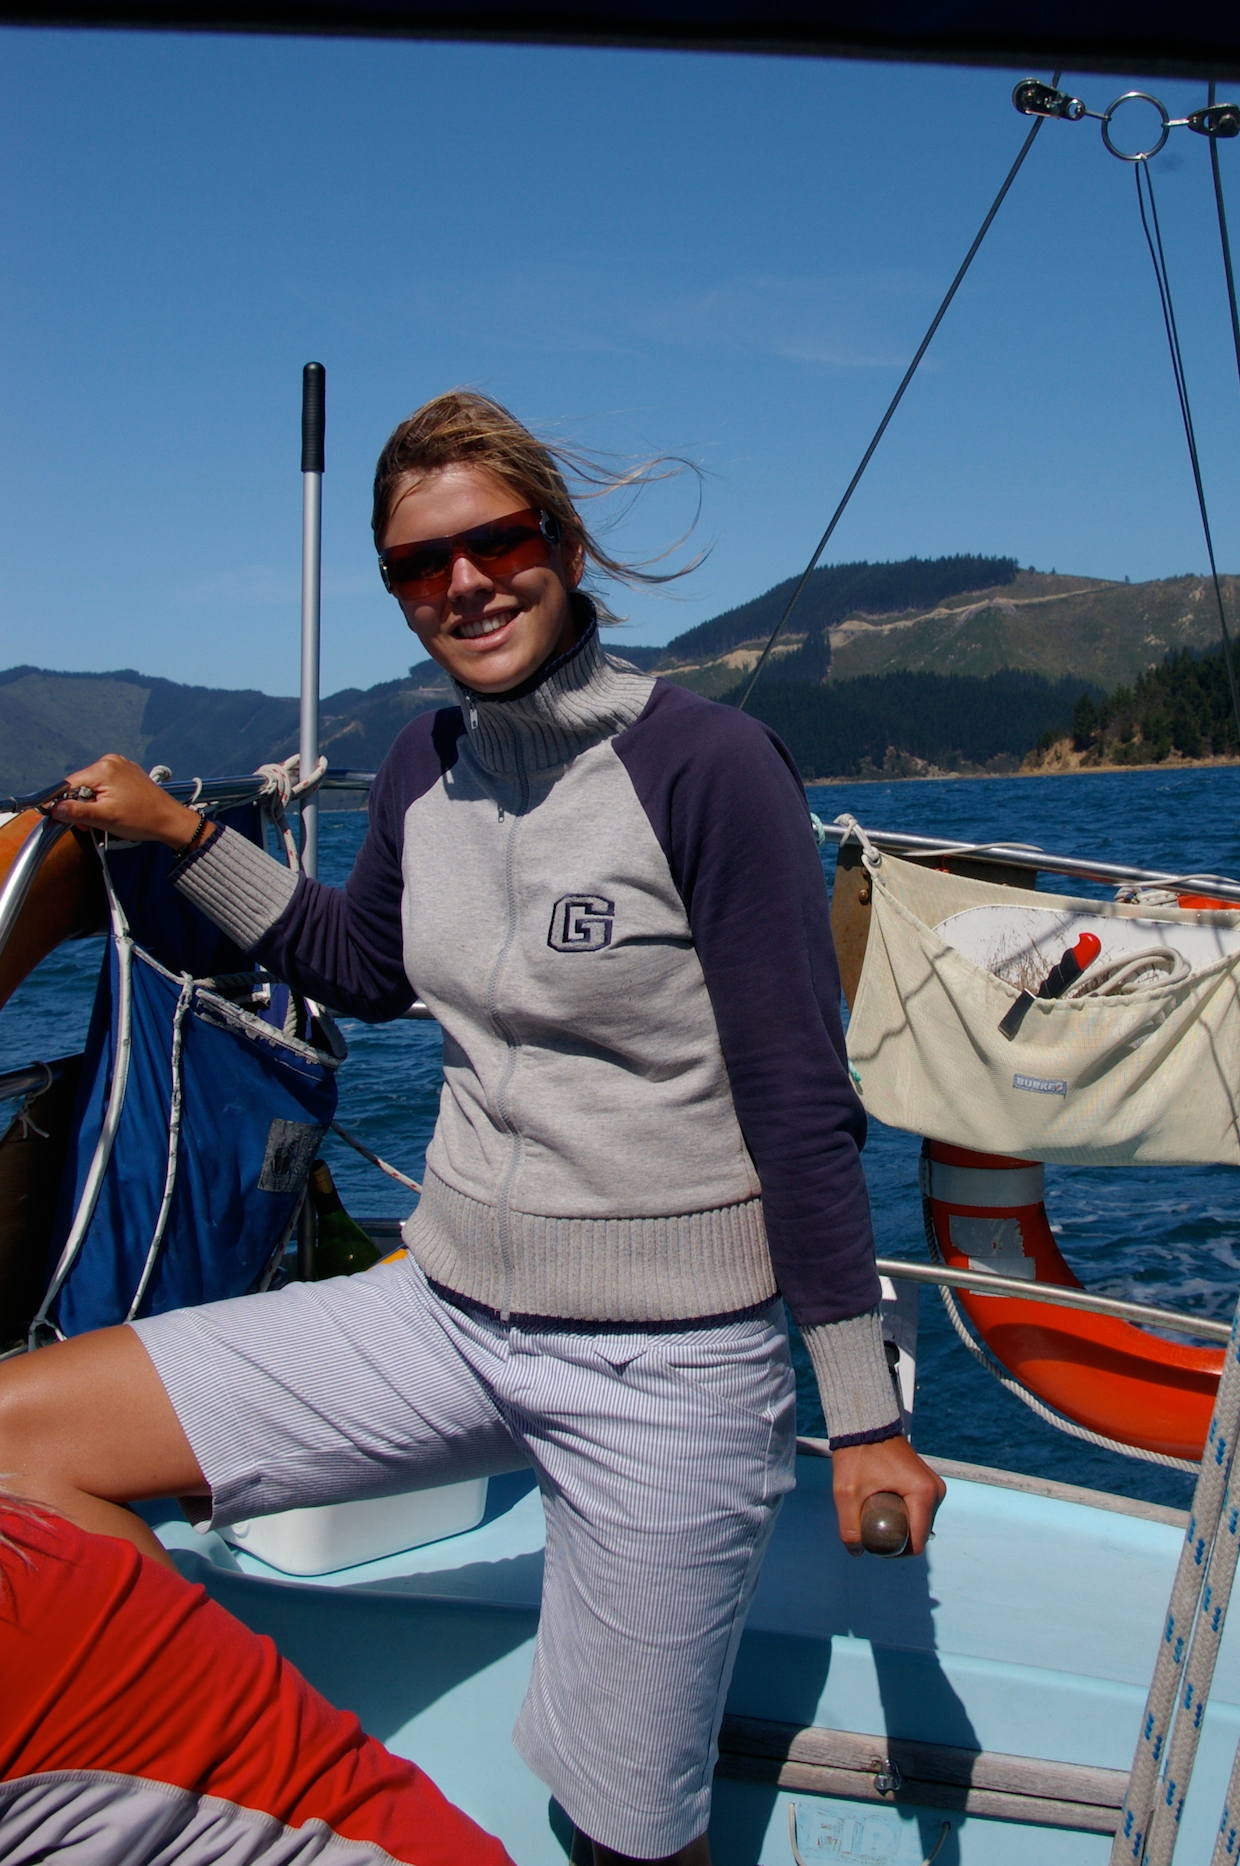 Sailing in New Zealand 10 years ago!